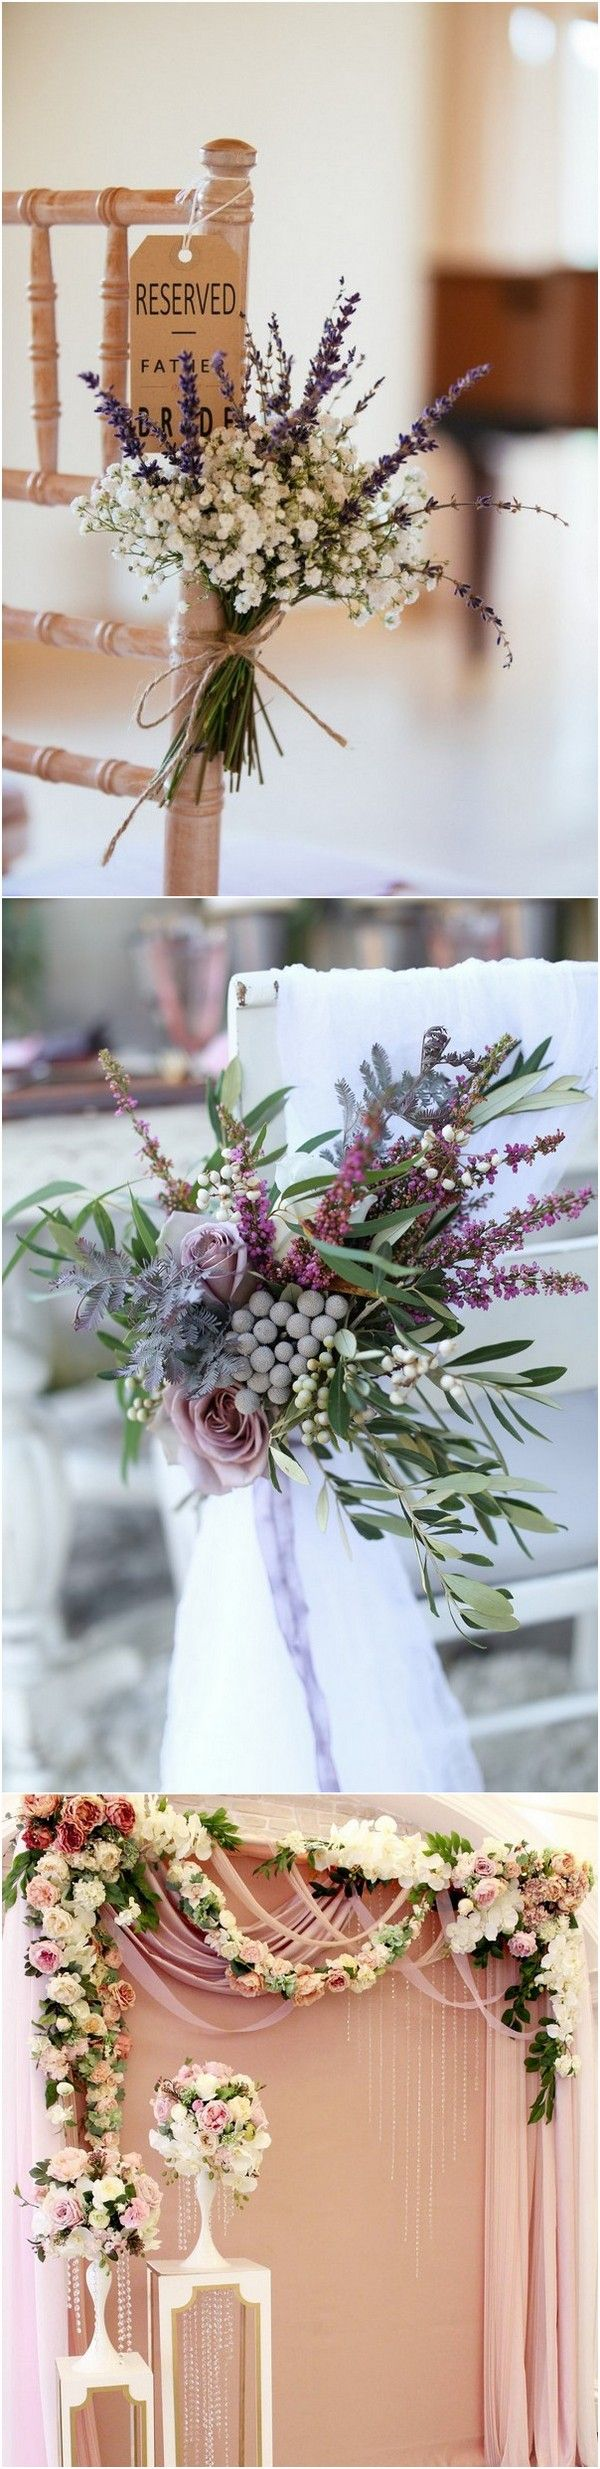 1752 best floral images on pinterest funeral flowers floral trending 25 stunning mauve wedding color ideas page 2 of 2 dhlflorist Image collections